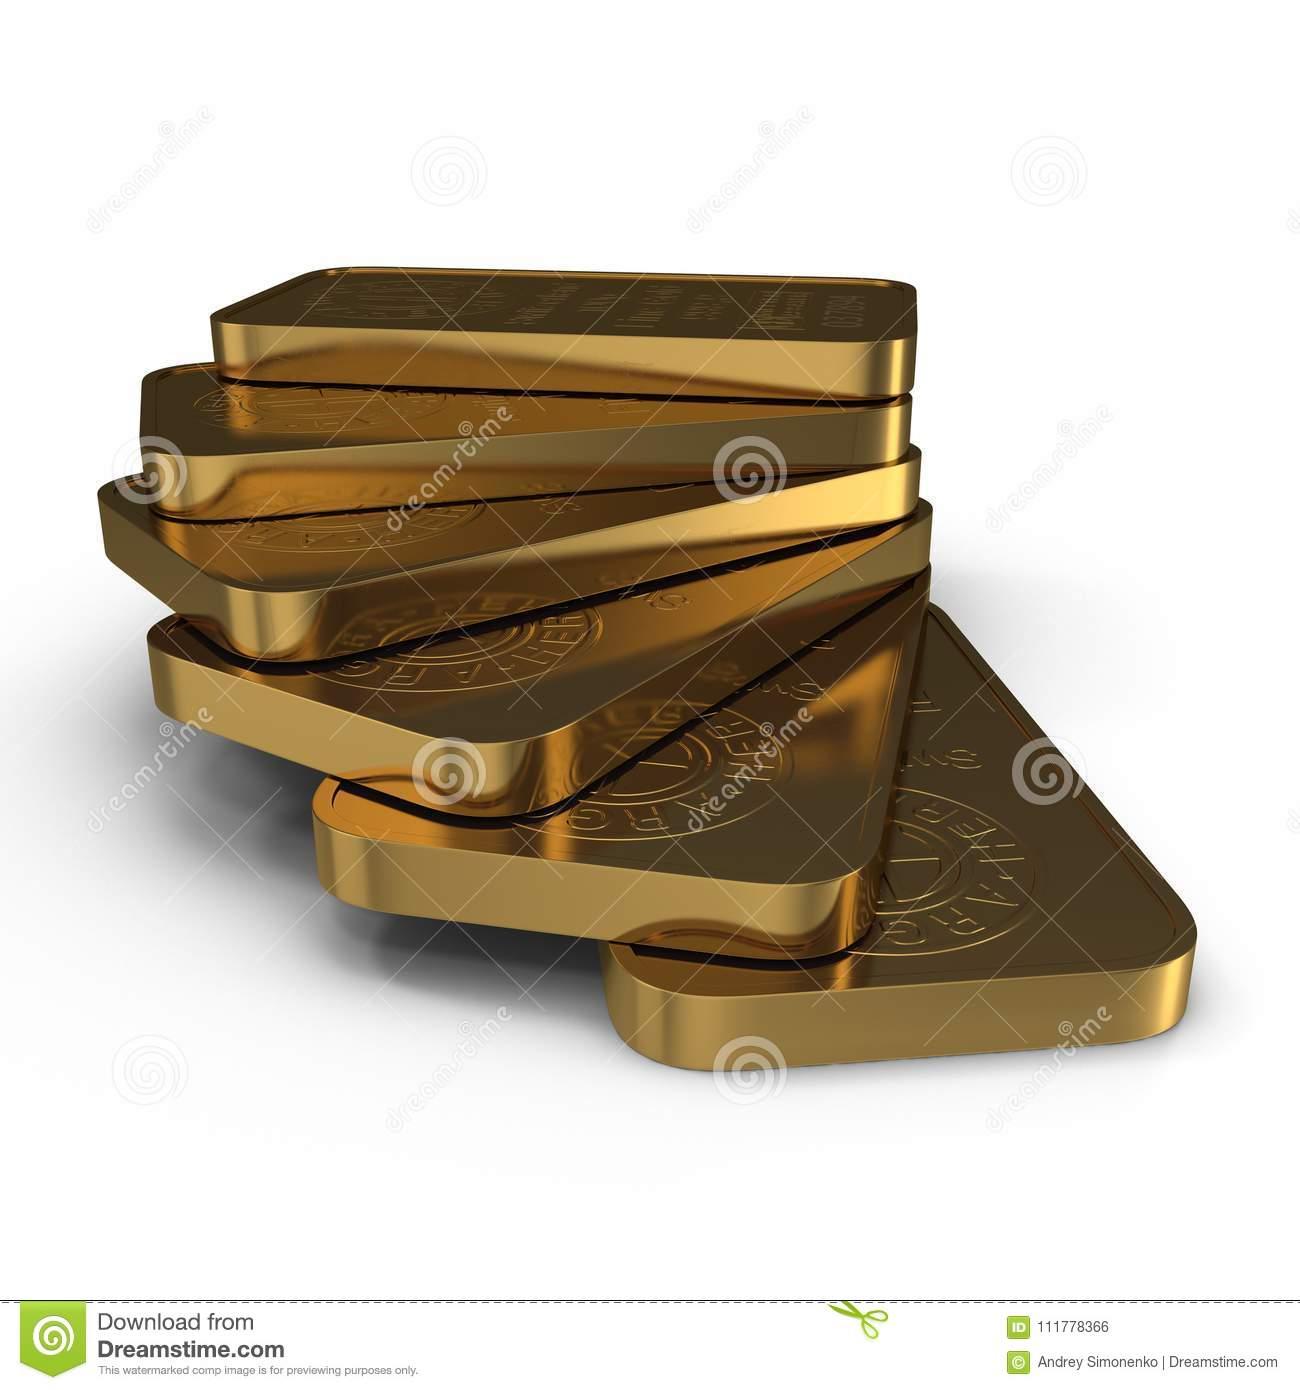 Gold bar 100g isolated on white. 3D illustration